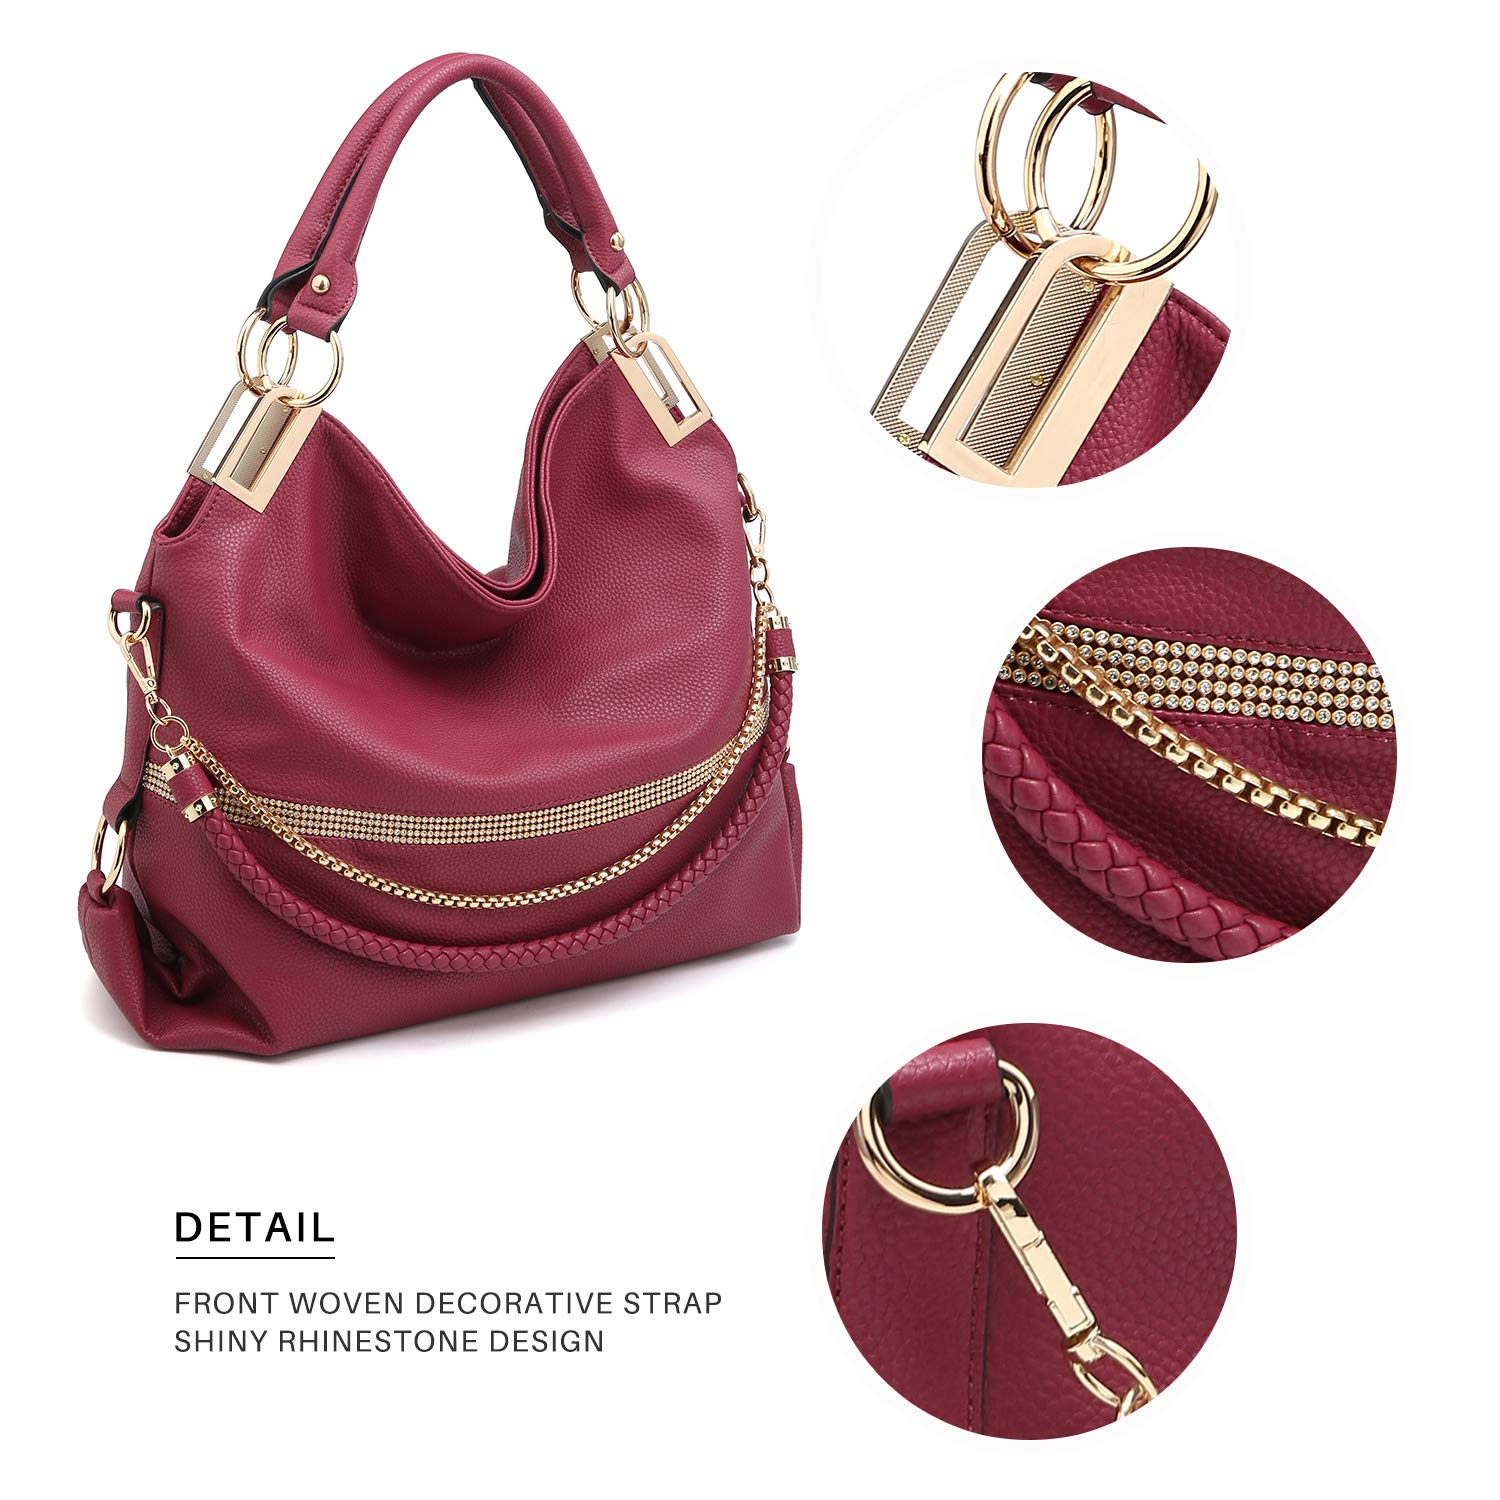 0e8eaa1526e8 Dasein Women s Classic Large Hobo Bag Rhinestone Chain Shoulder Bag Top  Handle Purse KC-XL larger image